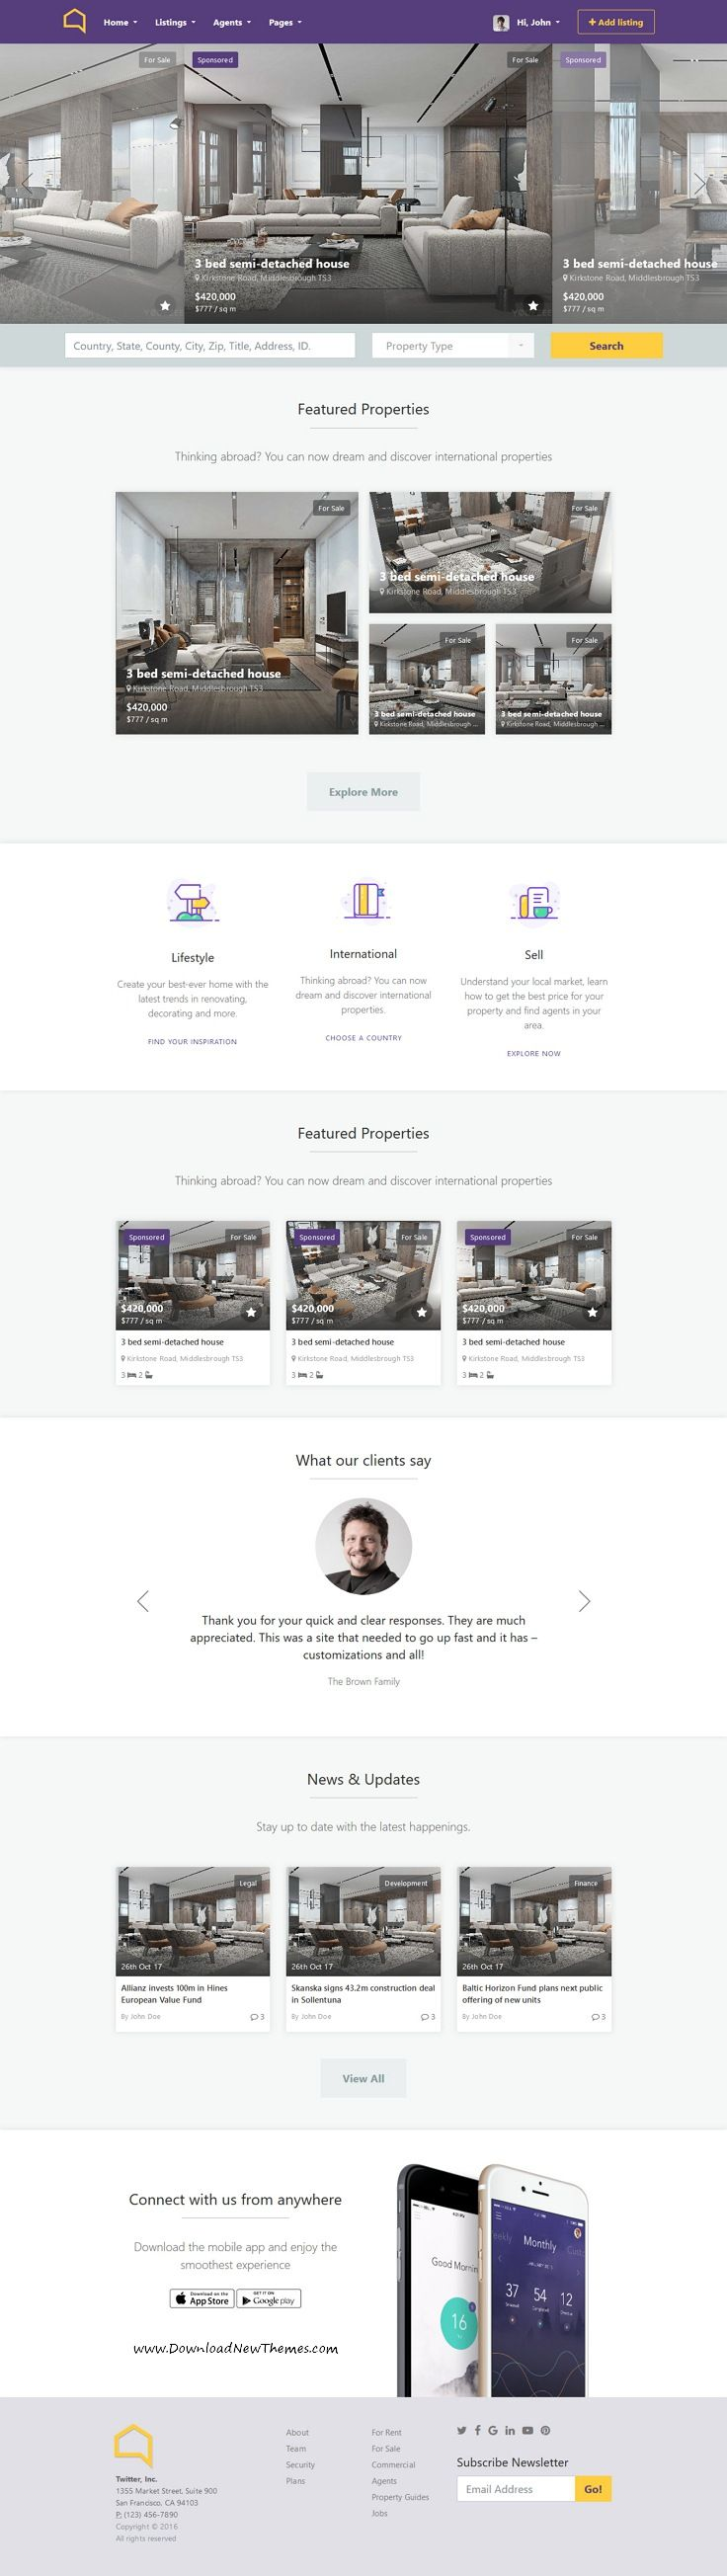 Listo real estate bootstrap 40 html template list website listo is clean and modern design 7in1 responsive html bootstrap template for professional realestate agents flashek Choice Image